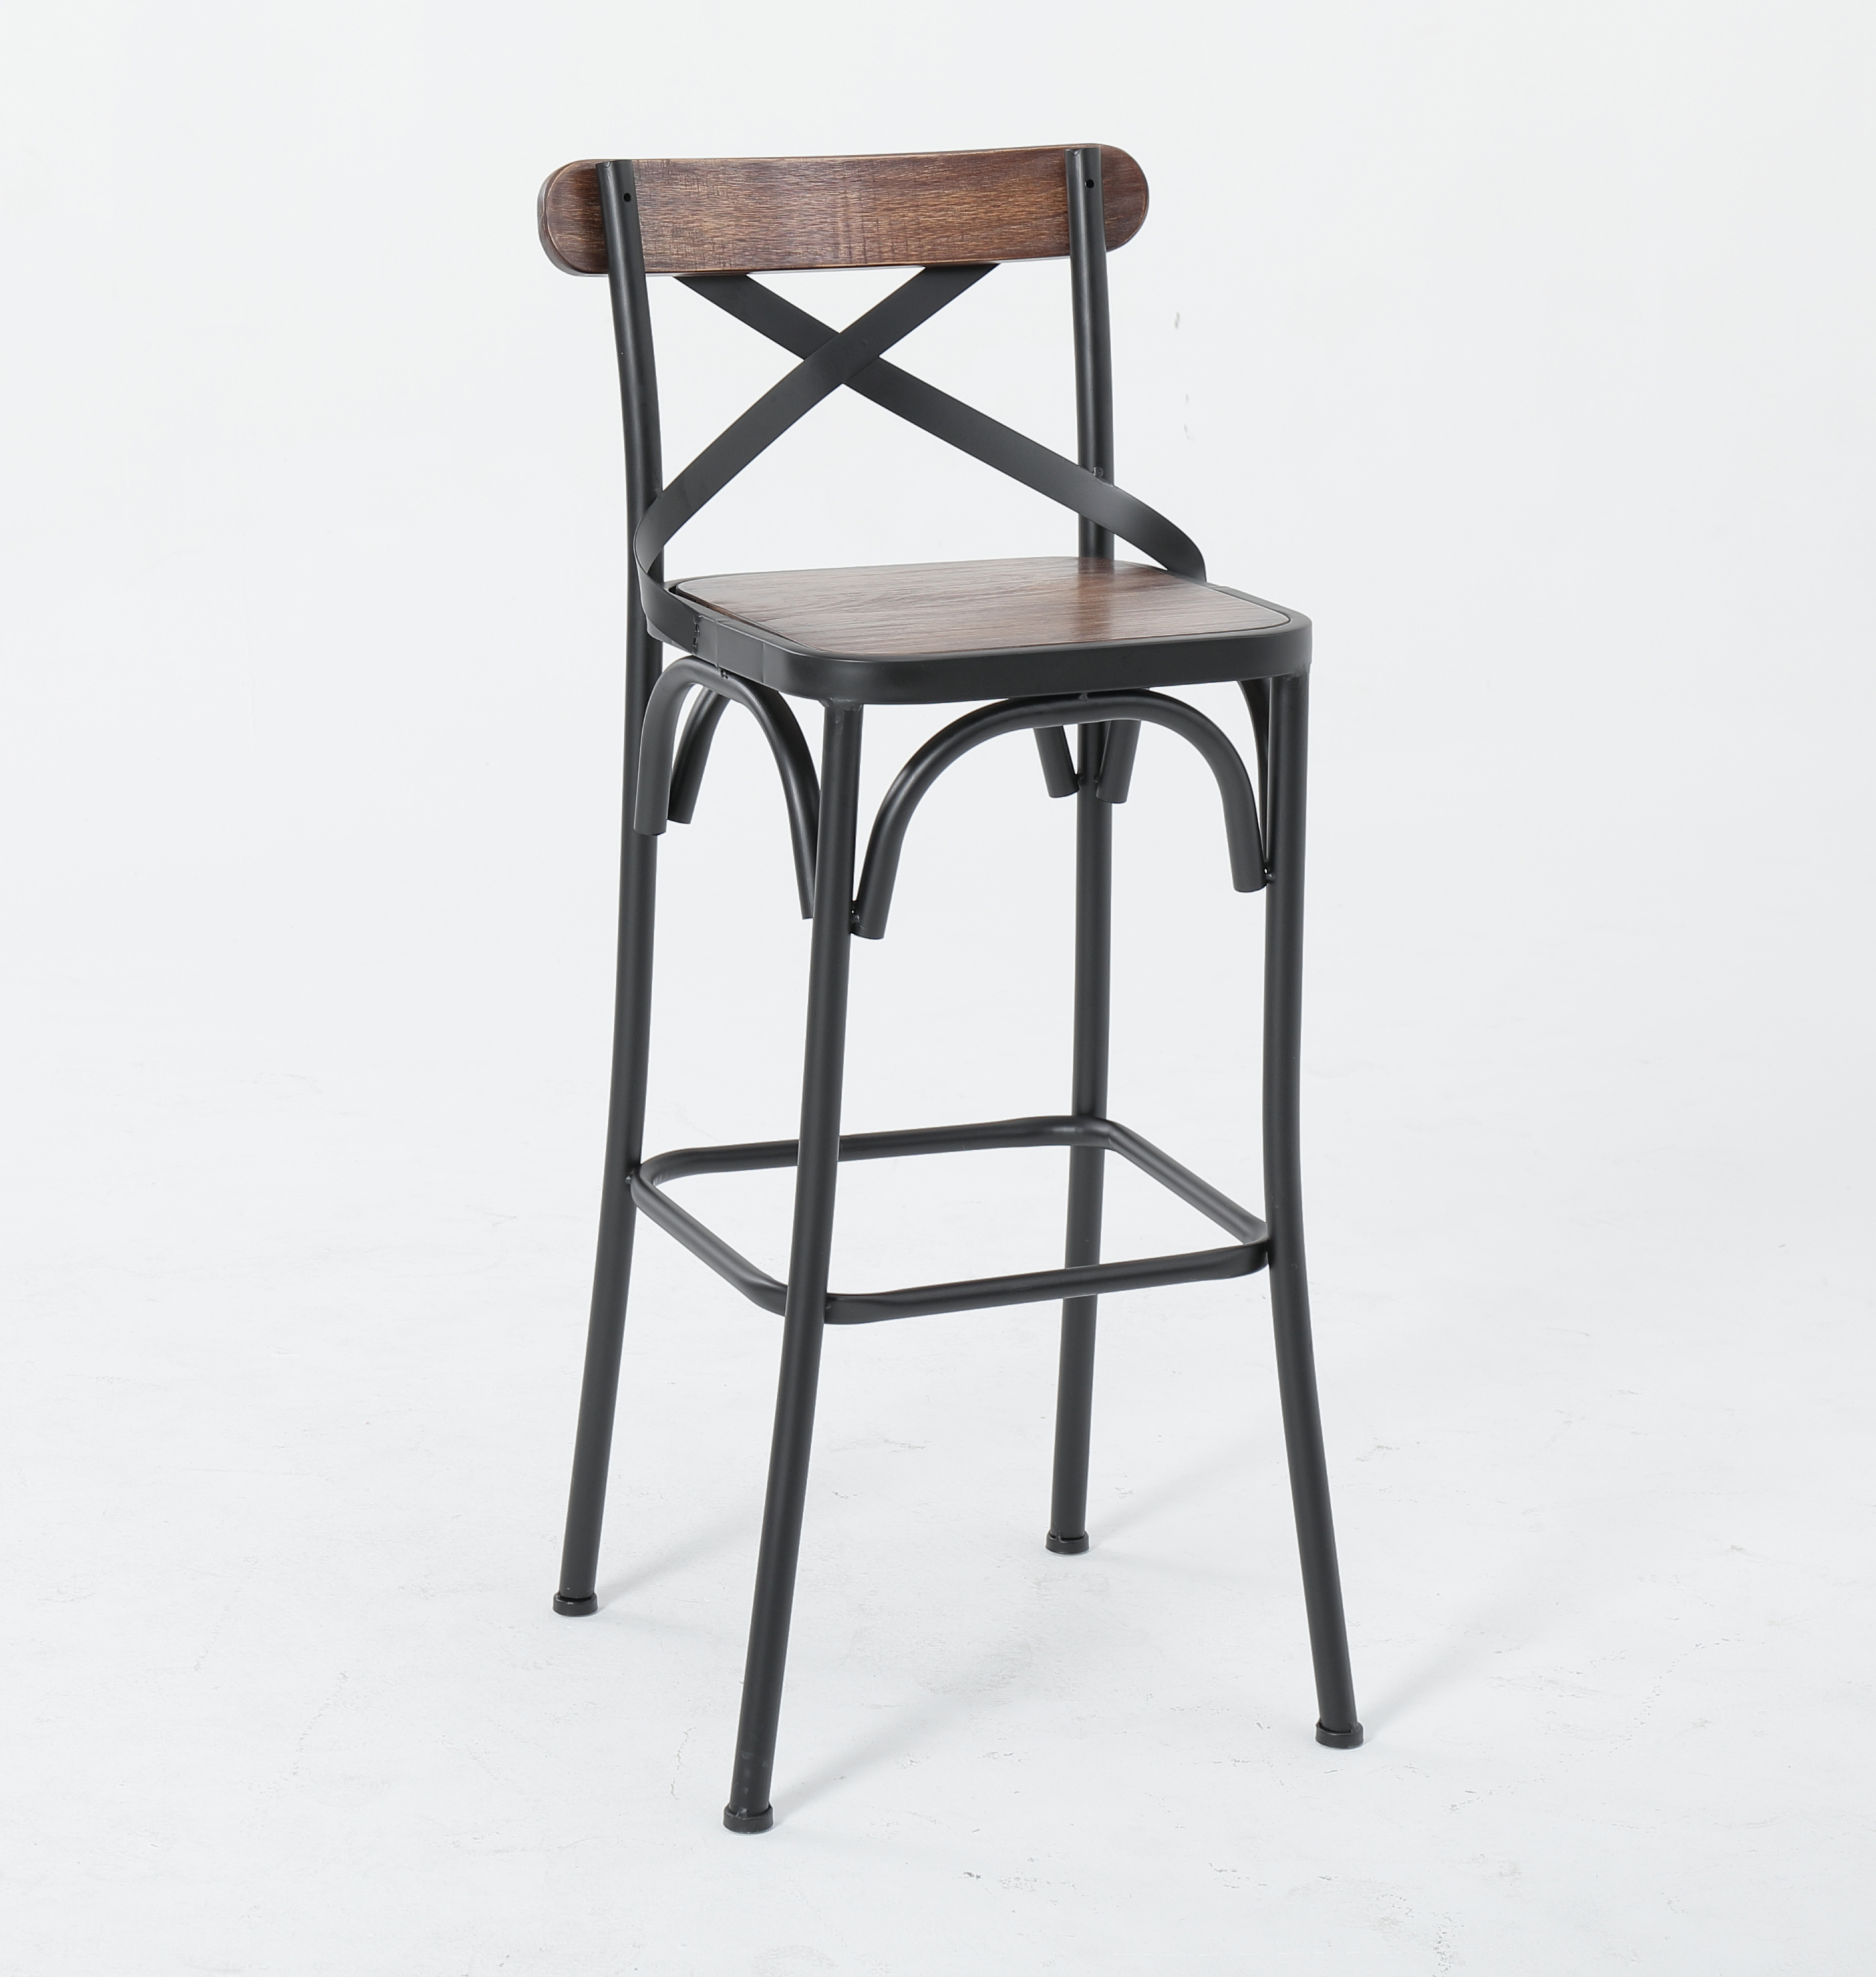 American High Stool Wrought Iron Solid Wood Bar Stool With Back High Chair Bar Chair Bar Chair Cashier Chair